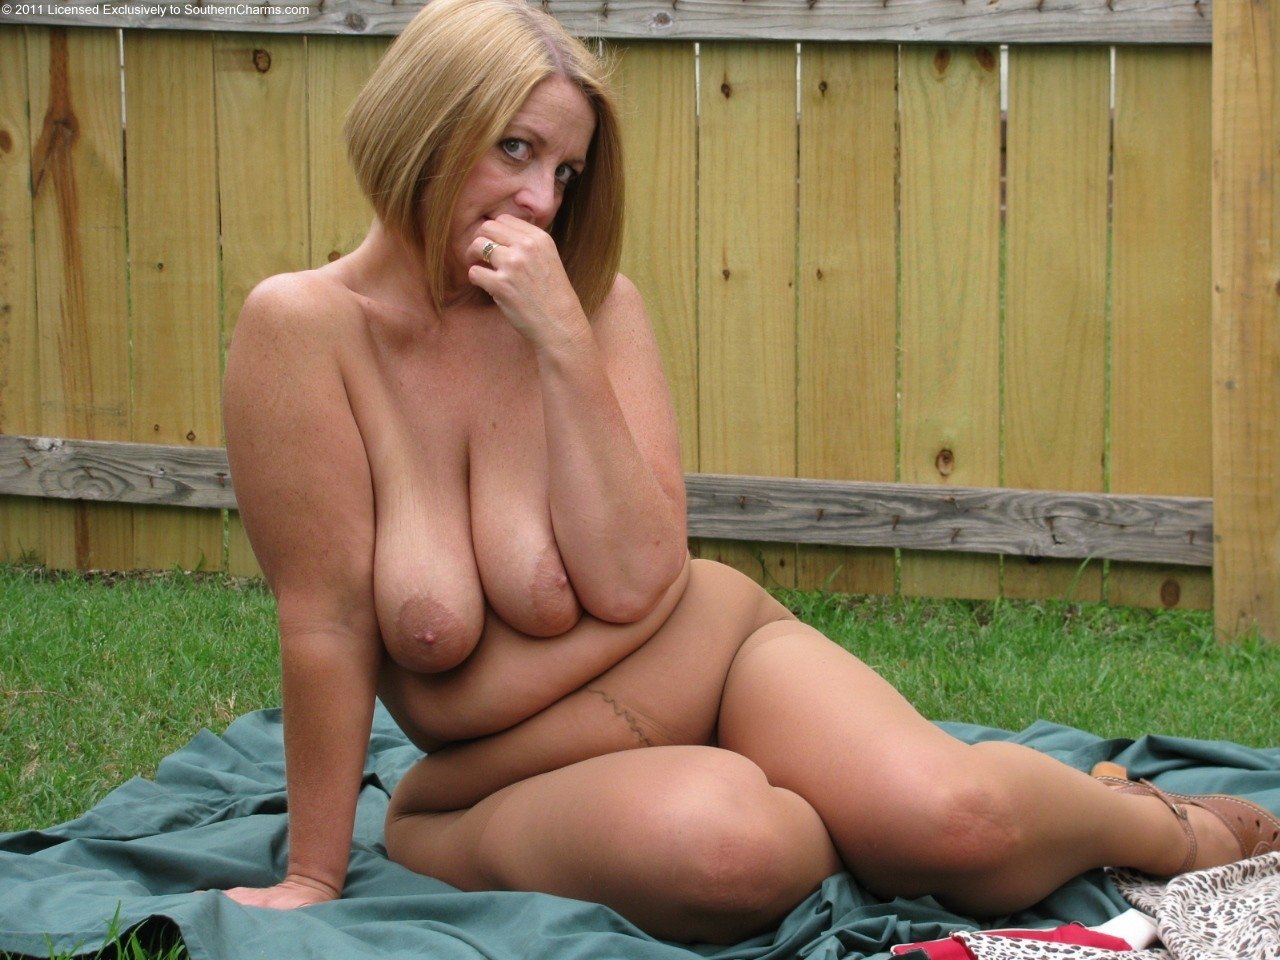 Free adult pic gallery